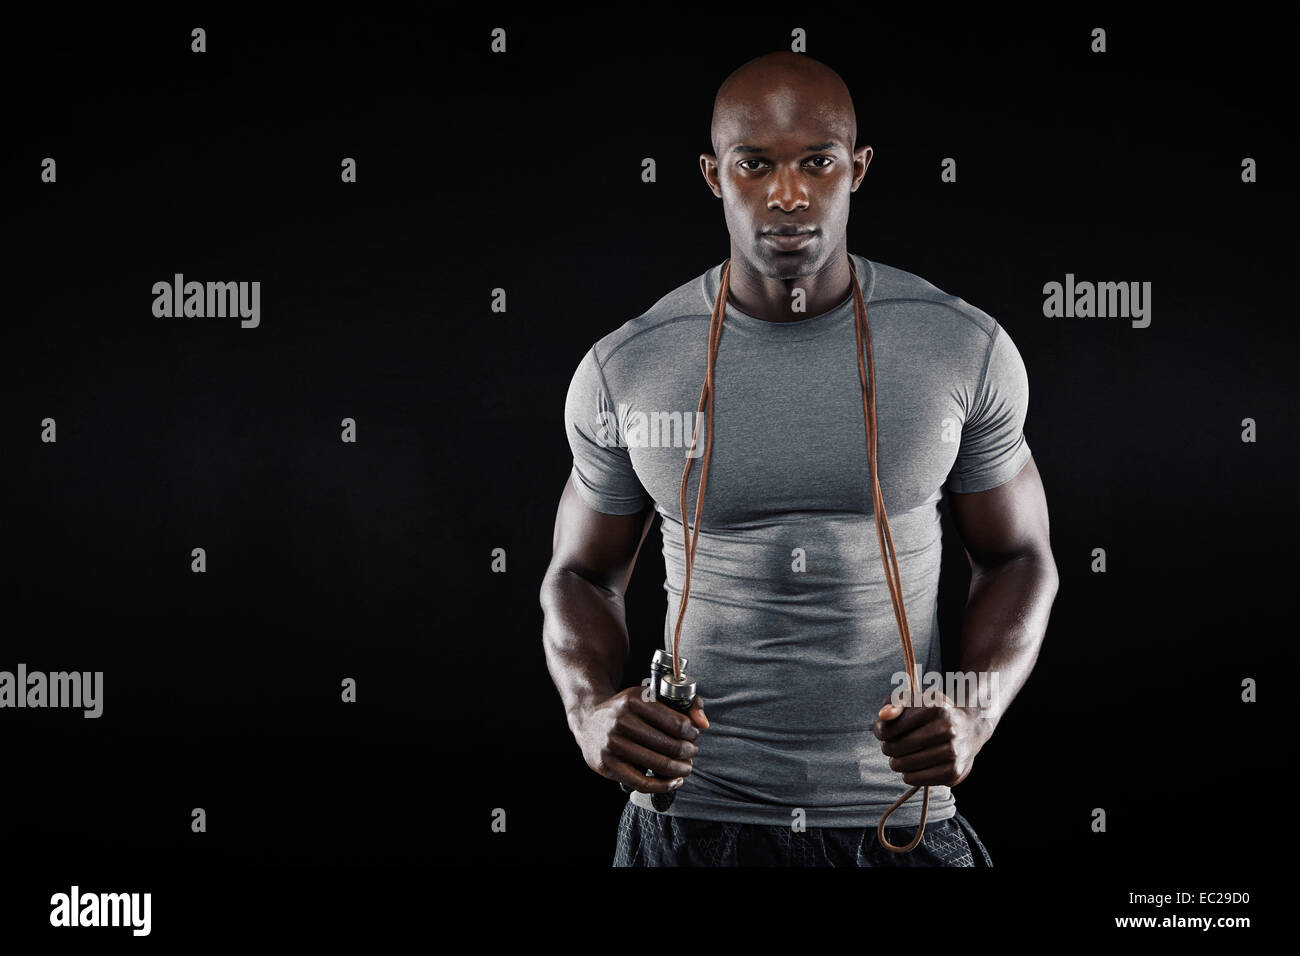 Handsome muscular man posing with jumping rope on black background. African fitness model with skipping rope. - Stock Image